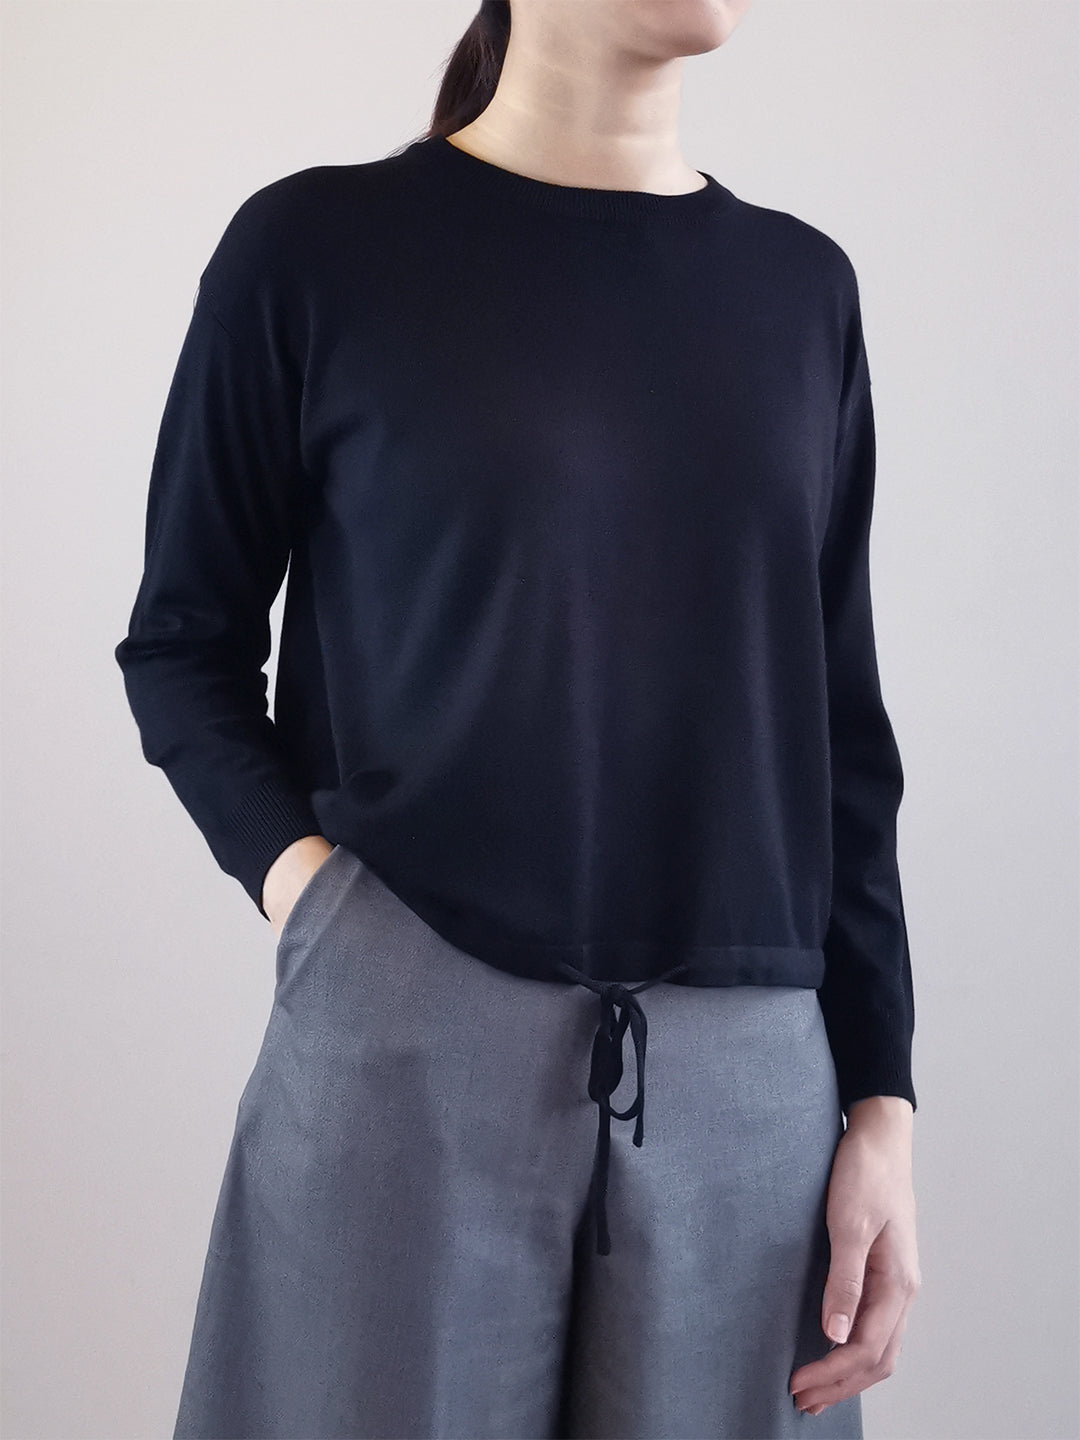 Long Sleeve Knit Top- Black